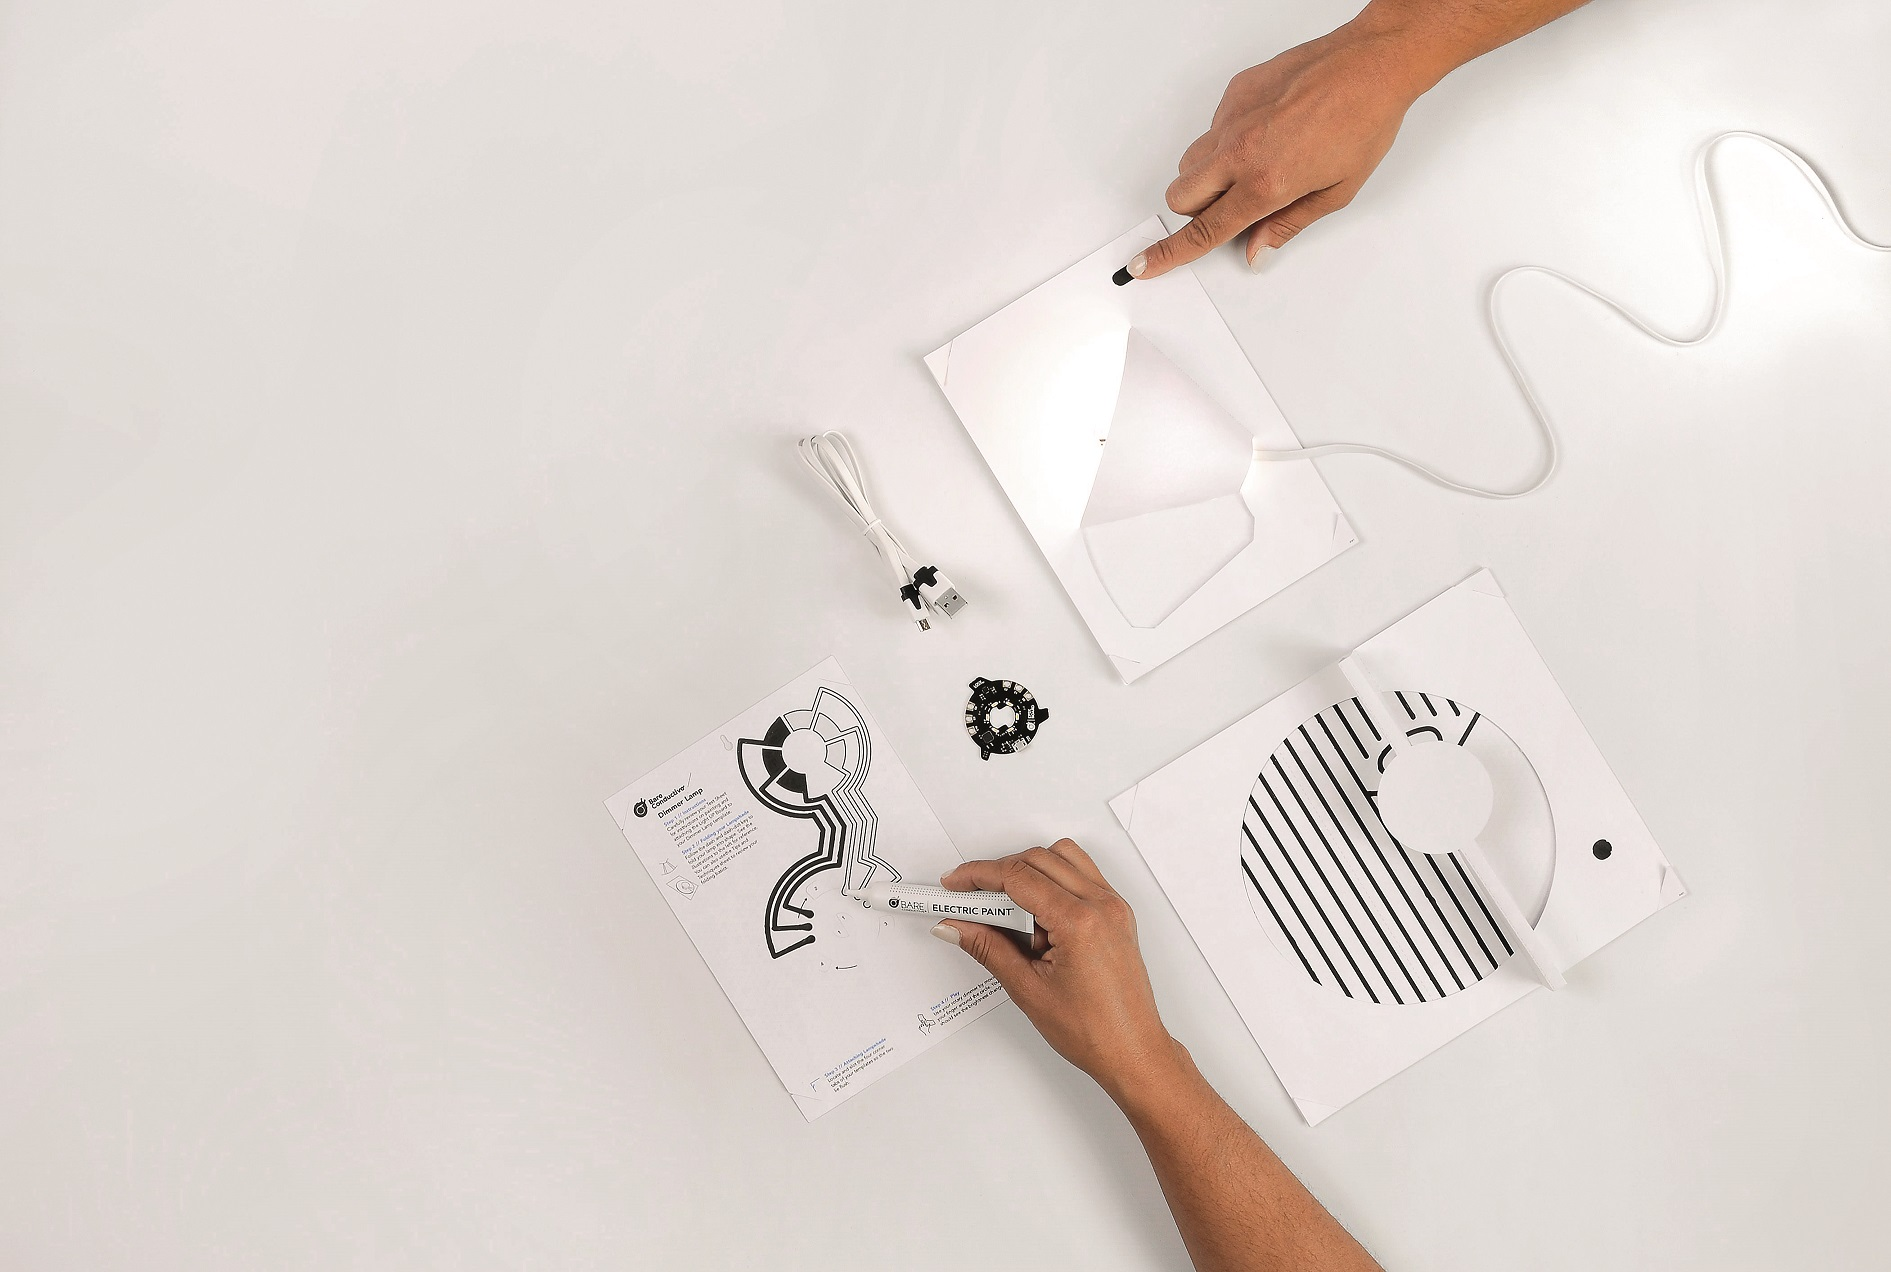 Bare-Conductive-Electric-Paint-Lamp-Kit-lampa-1